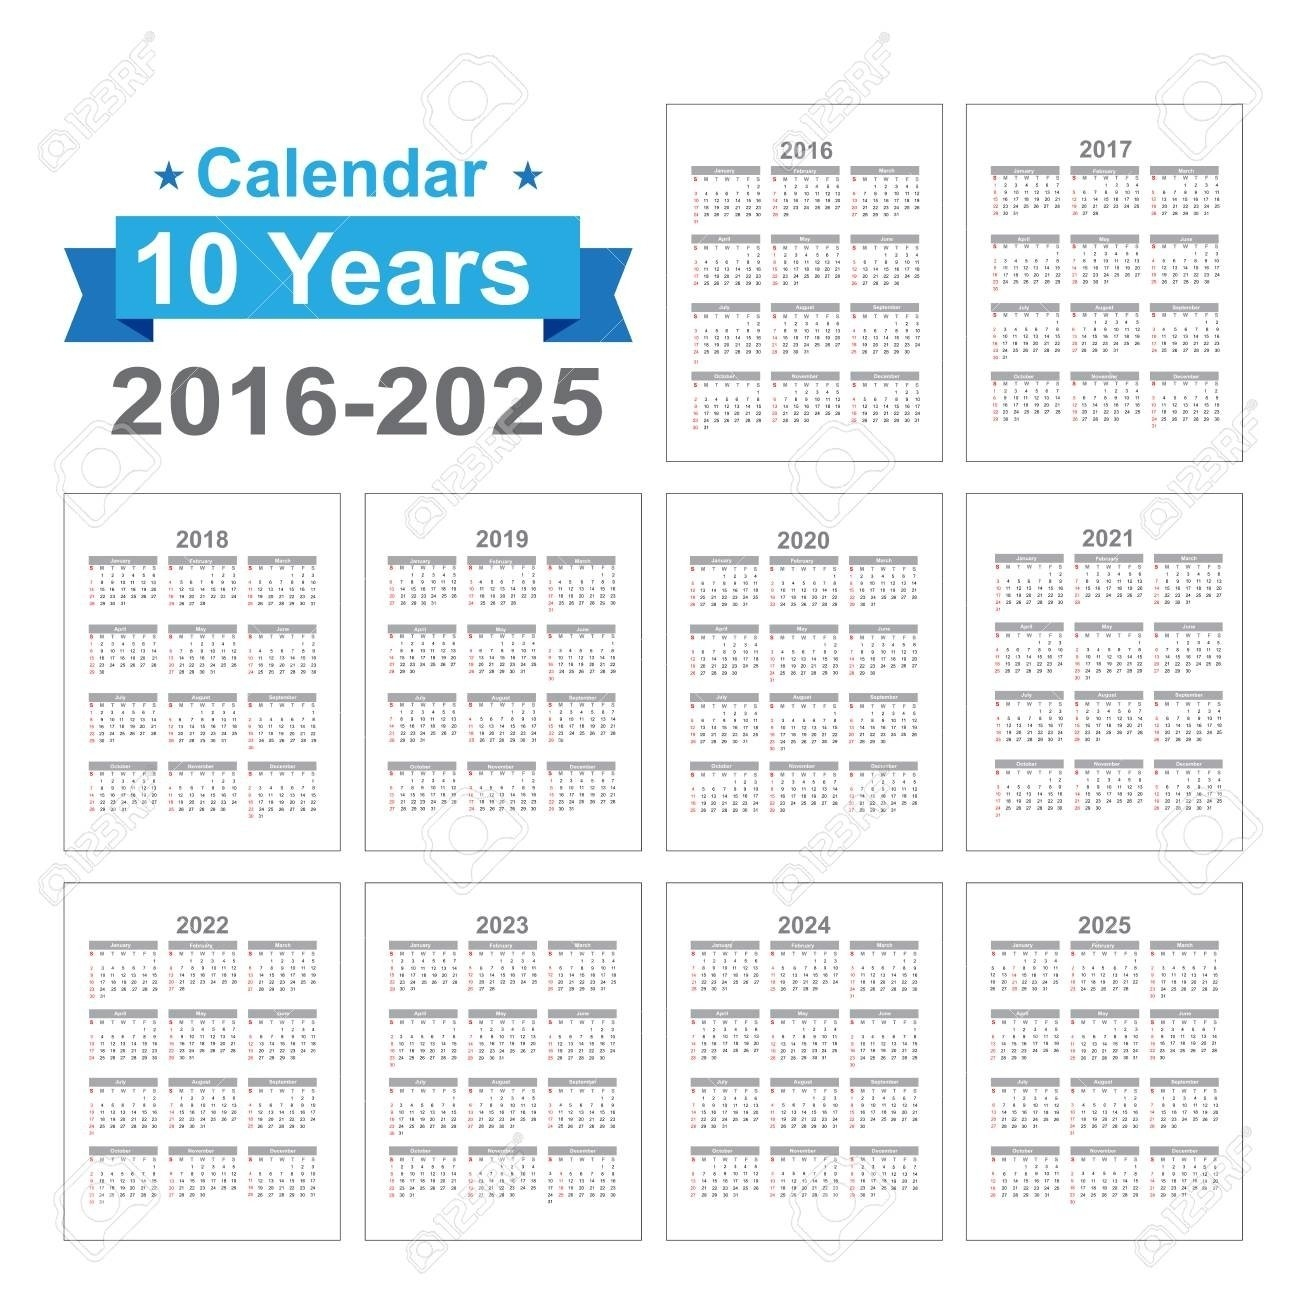 Perky Calendar 2020 To 2025 • Printable Blank Calendar Template for October Calendars For 2022 2023 2024 And 2025 Graphics